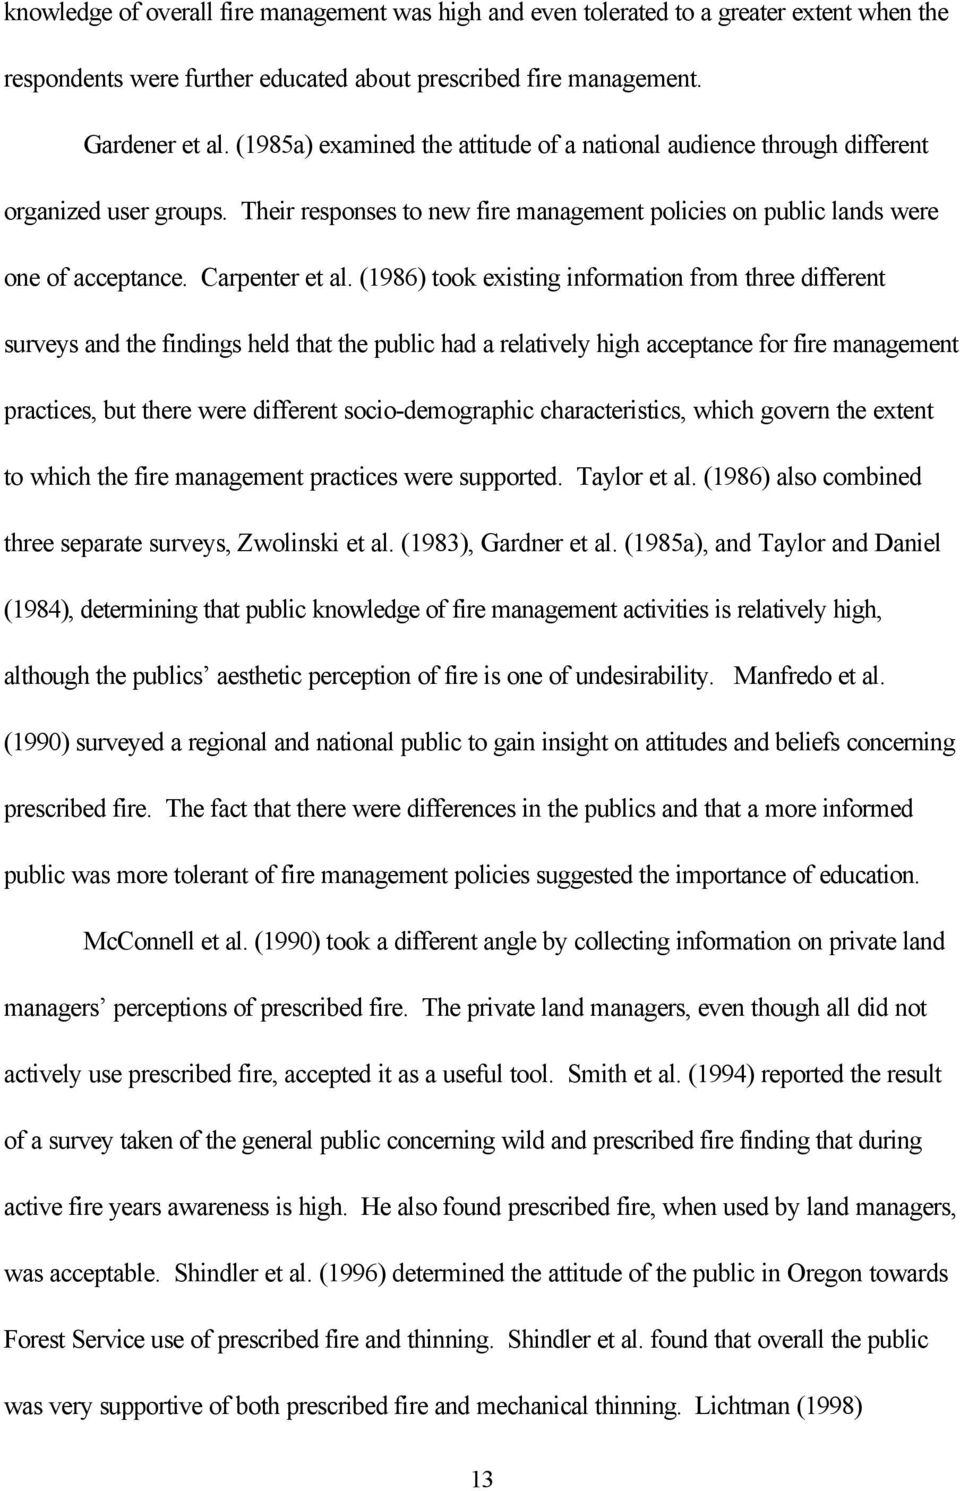 (1986) took existing information from three different surveys and the findings held that the public had a relatively high acceptance for fire management practices, but there were different